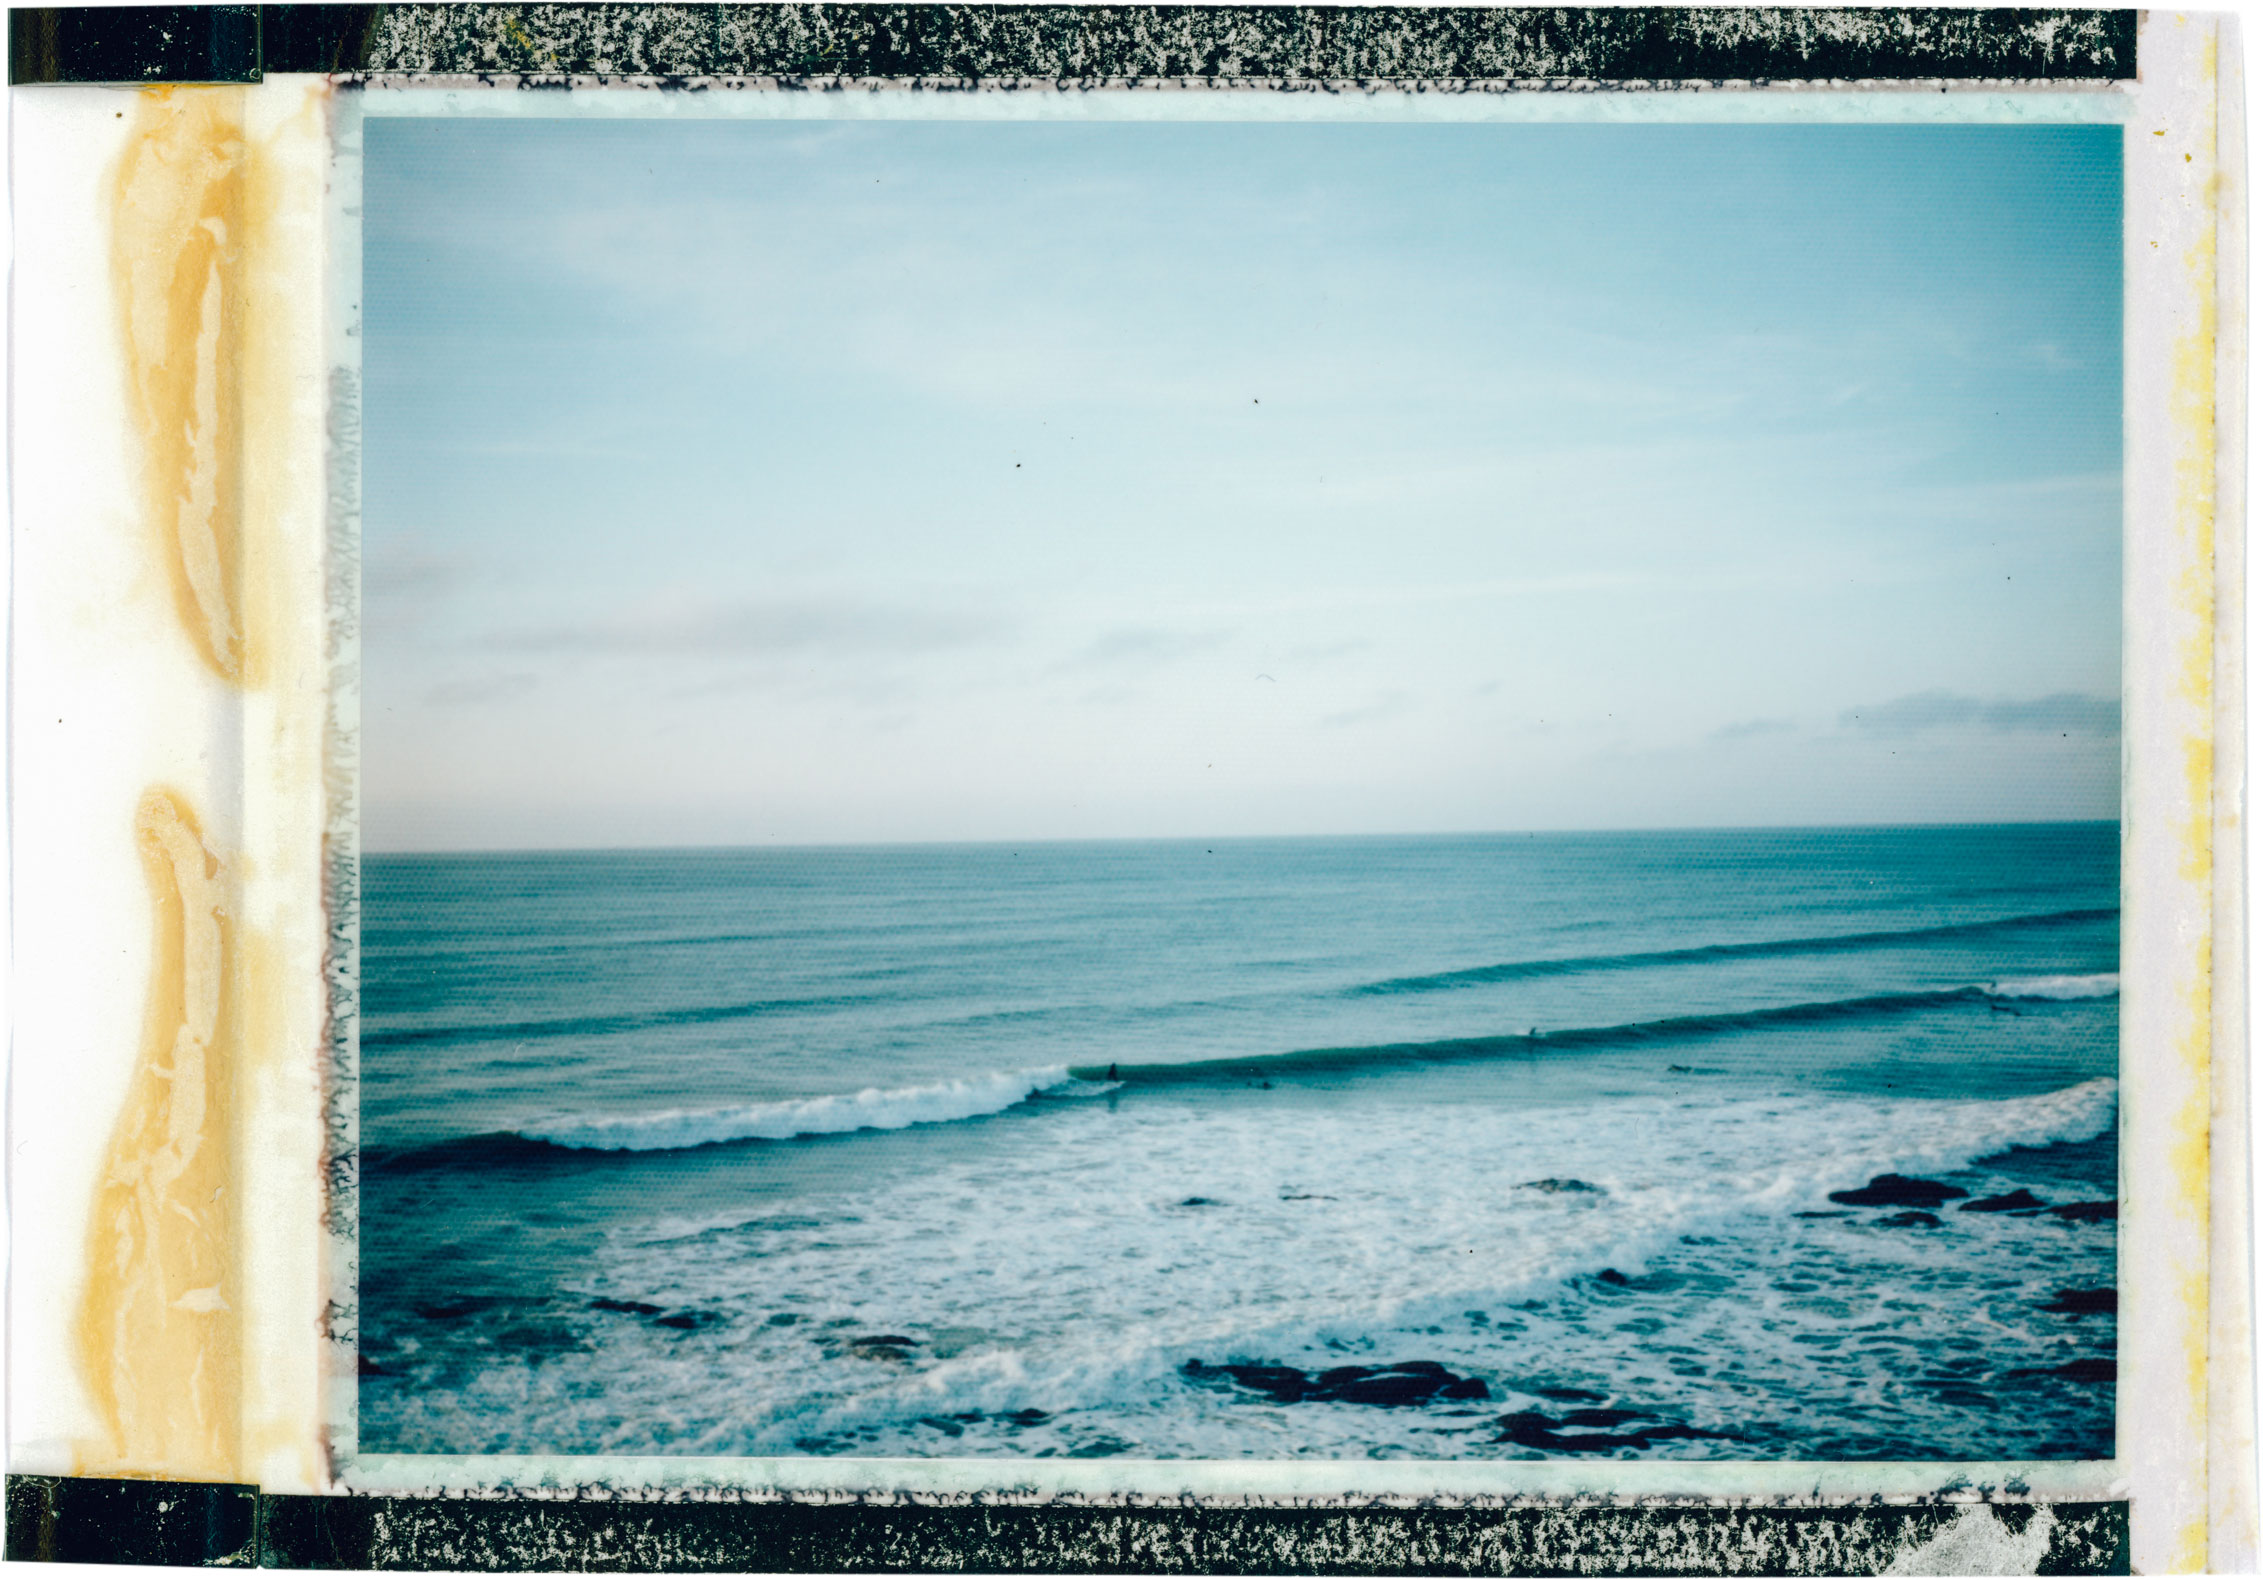 Surfers+on+Polaroid+out+at+Fistral+Beach+_+Karl+Mackie+Photography.jpeg